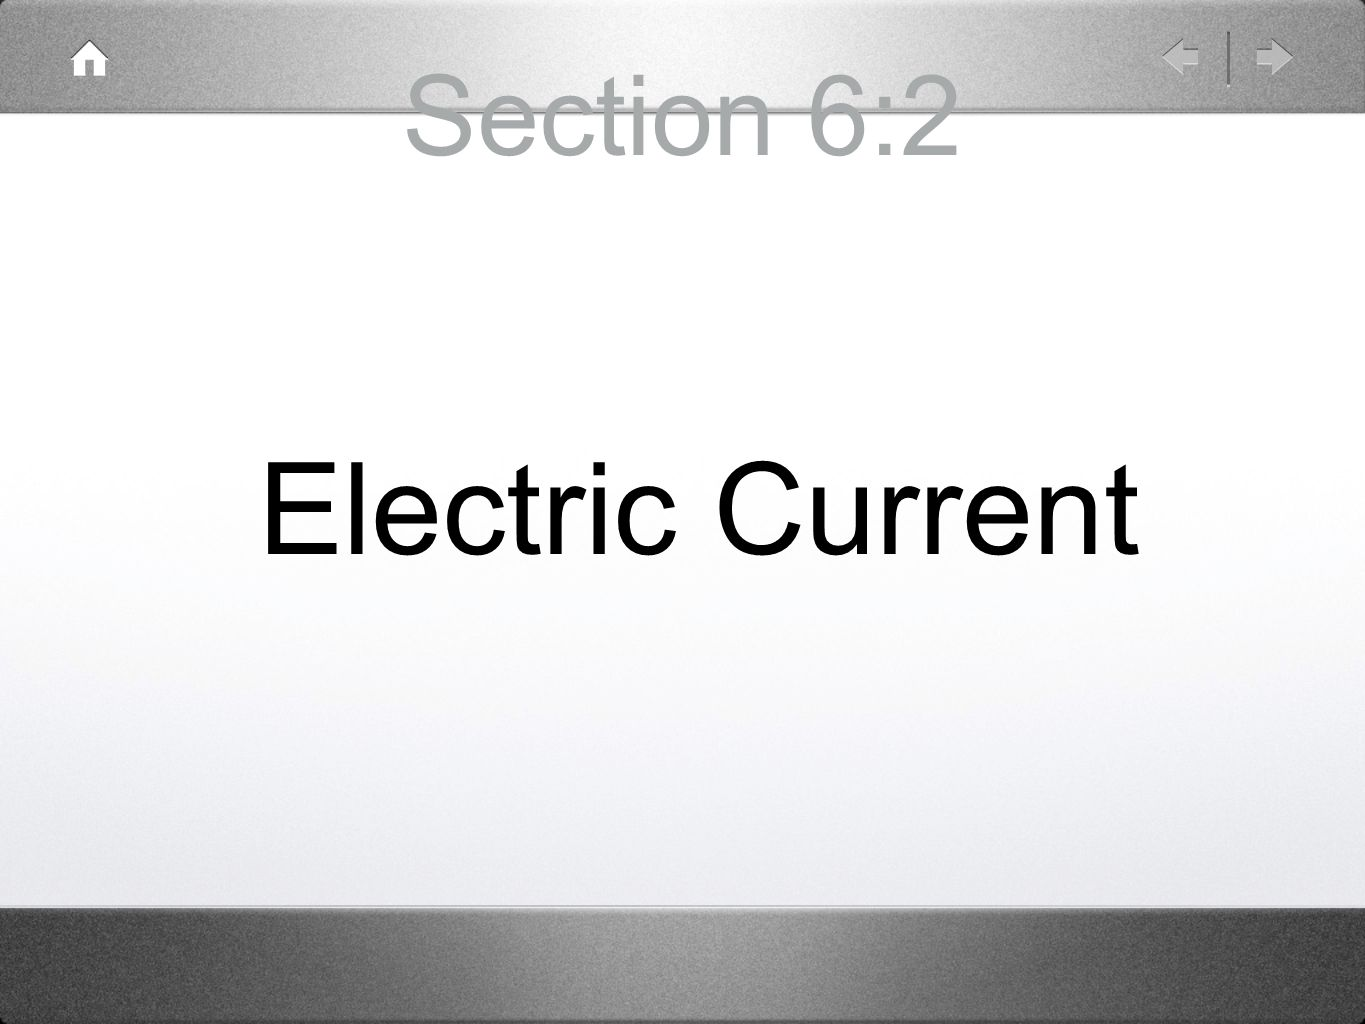 Section 6:2 Electric Current